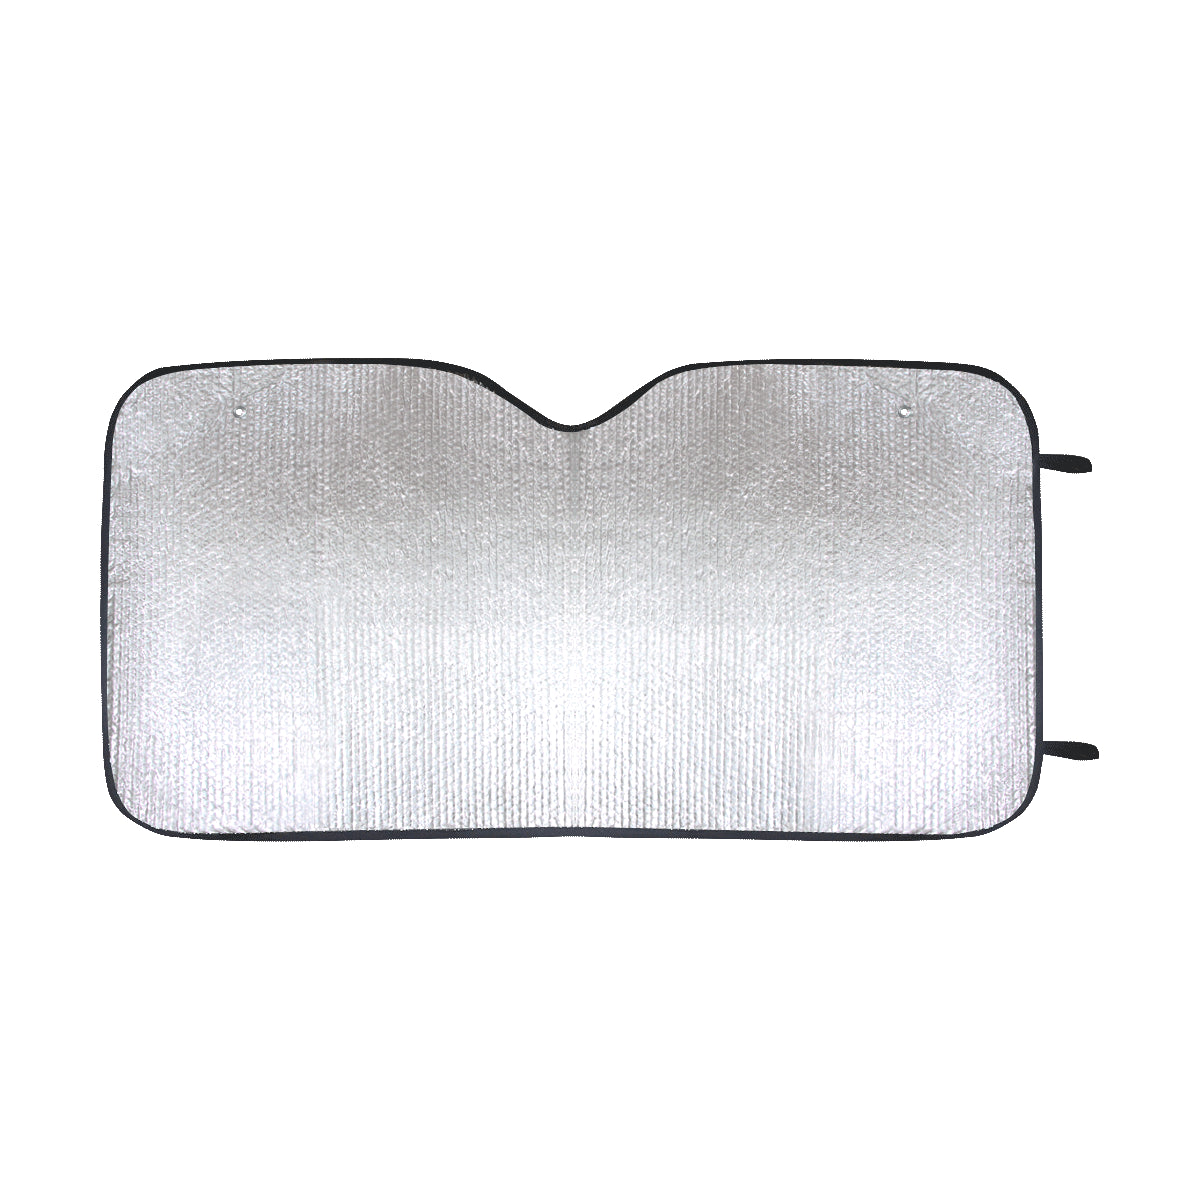 CNMI Tribal Saipan Tinian Rota White Car Sun Shade